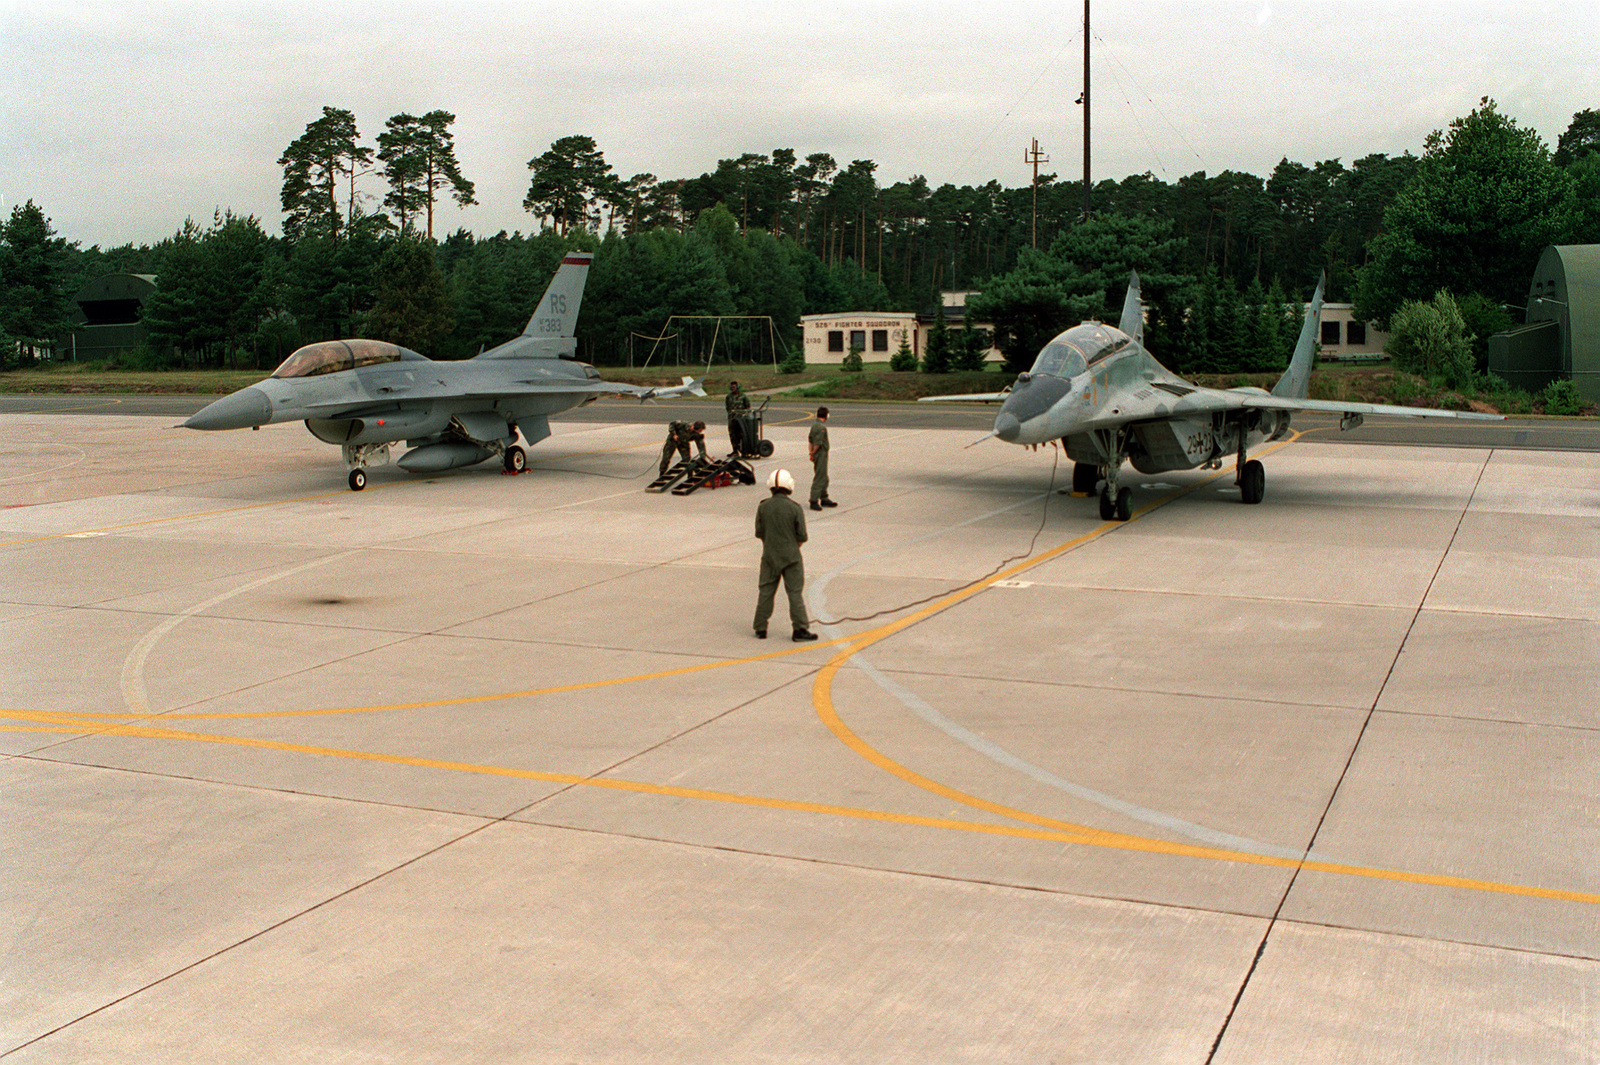 German MIG-29 (right) next to U.S. Air Force F-16 parked on the flightline. Following their MIG-29 flight, MAJ. Gassner and GEN. Oaks reversed roles and embarked on a flight in the F-16. Since the end of the Cold War, armed forces from the east and west are meeting to further understand and strengthen friendships. Such a visit occurred when a MIG-29 from the former East Germany landed and hosted a flight for GEN. Oaks. GEN. Oaks returned the favor by giving the German pilot a F-16 ride